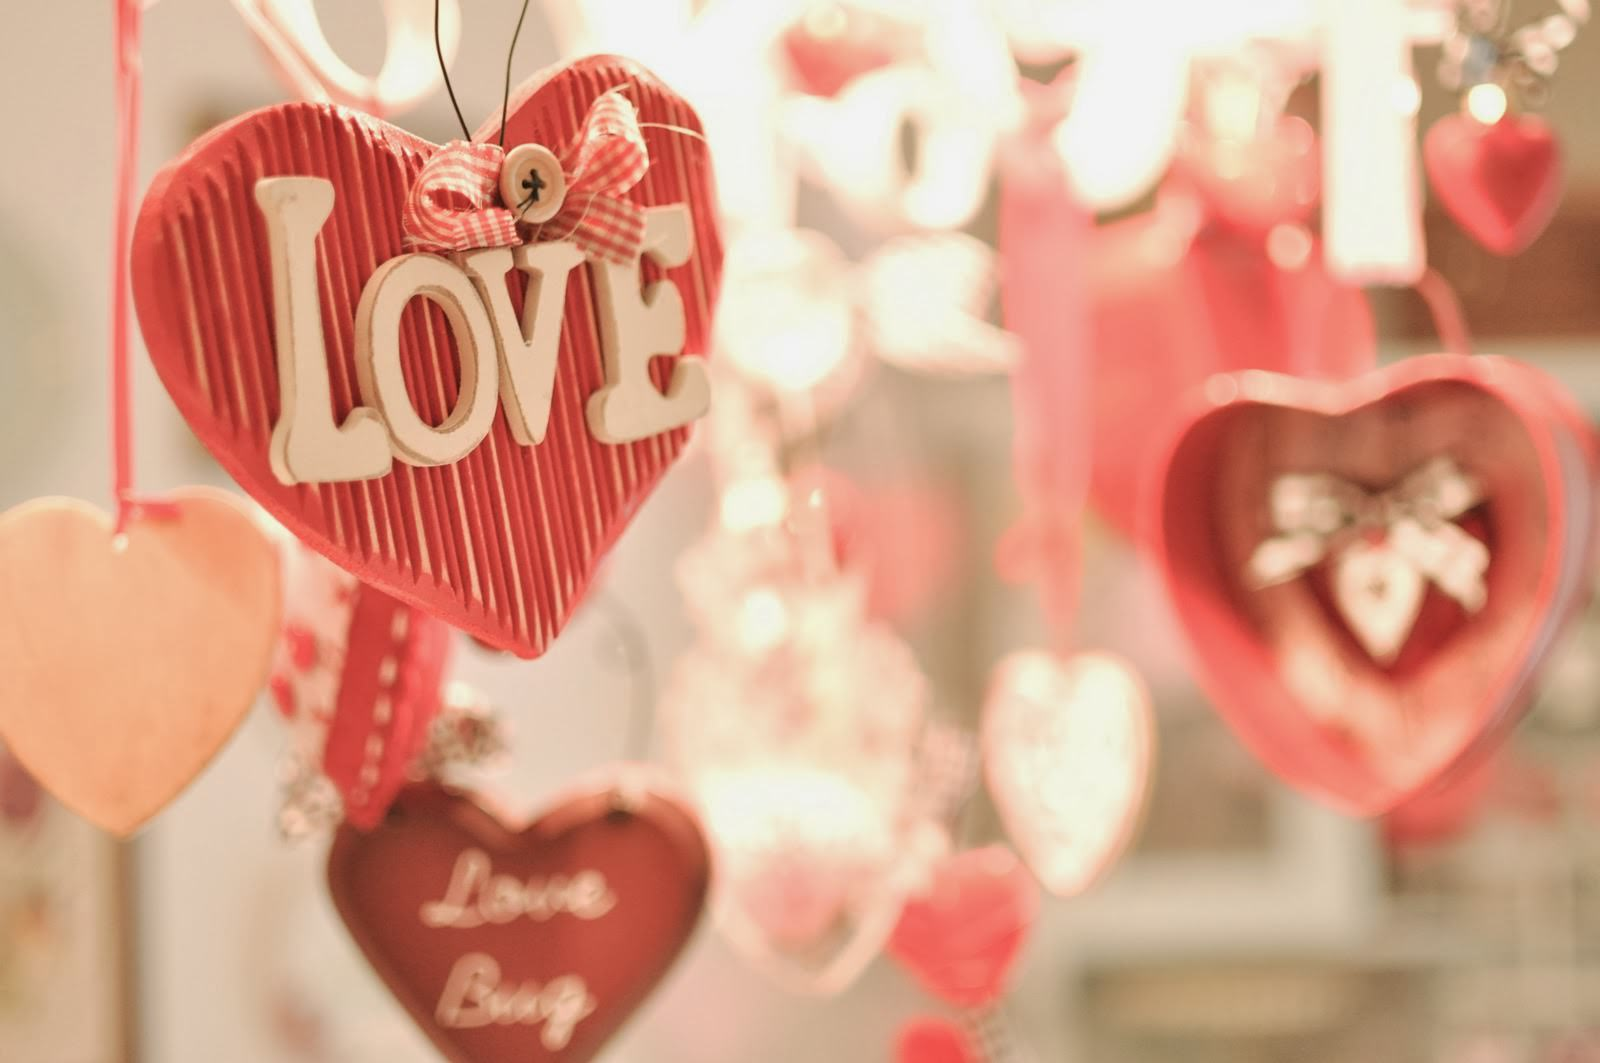 1600x1063 Cute Love For Valentine Day Wallpaper Wide Wallpaper. High